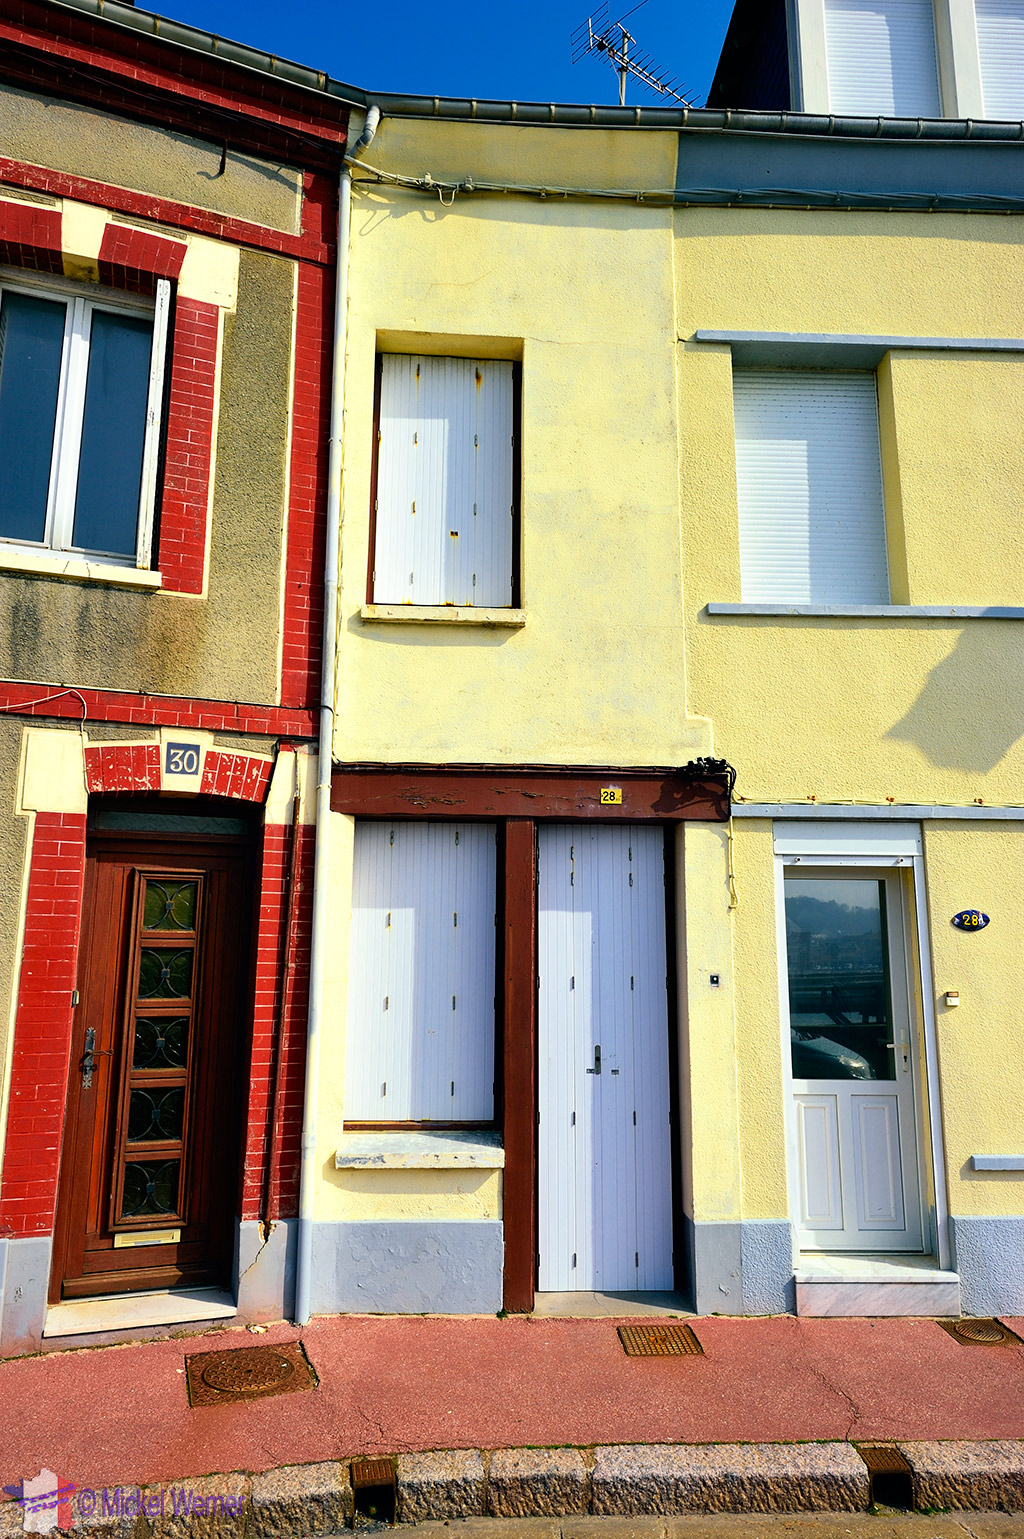 3 fishermen houses next to each other in Fecamp